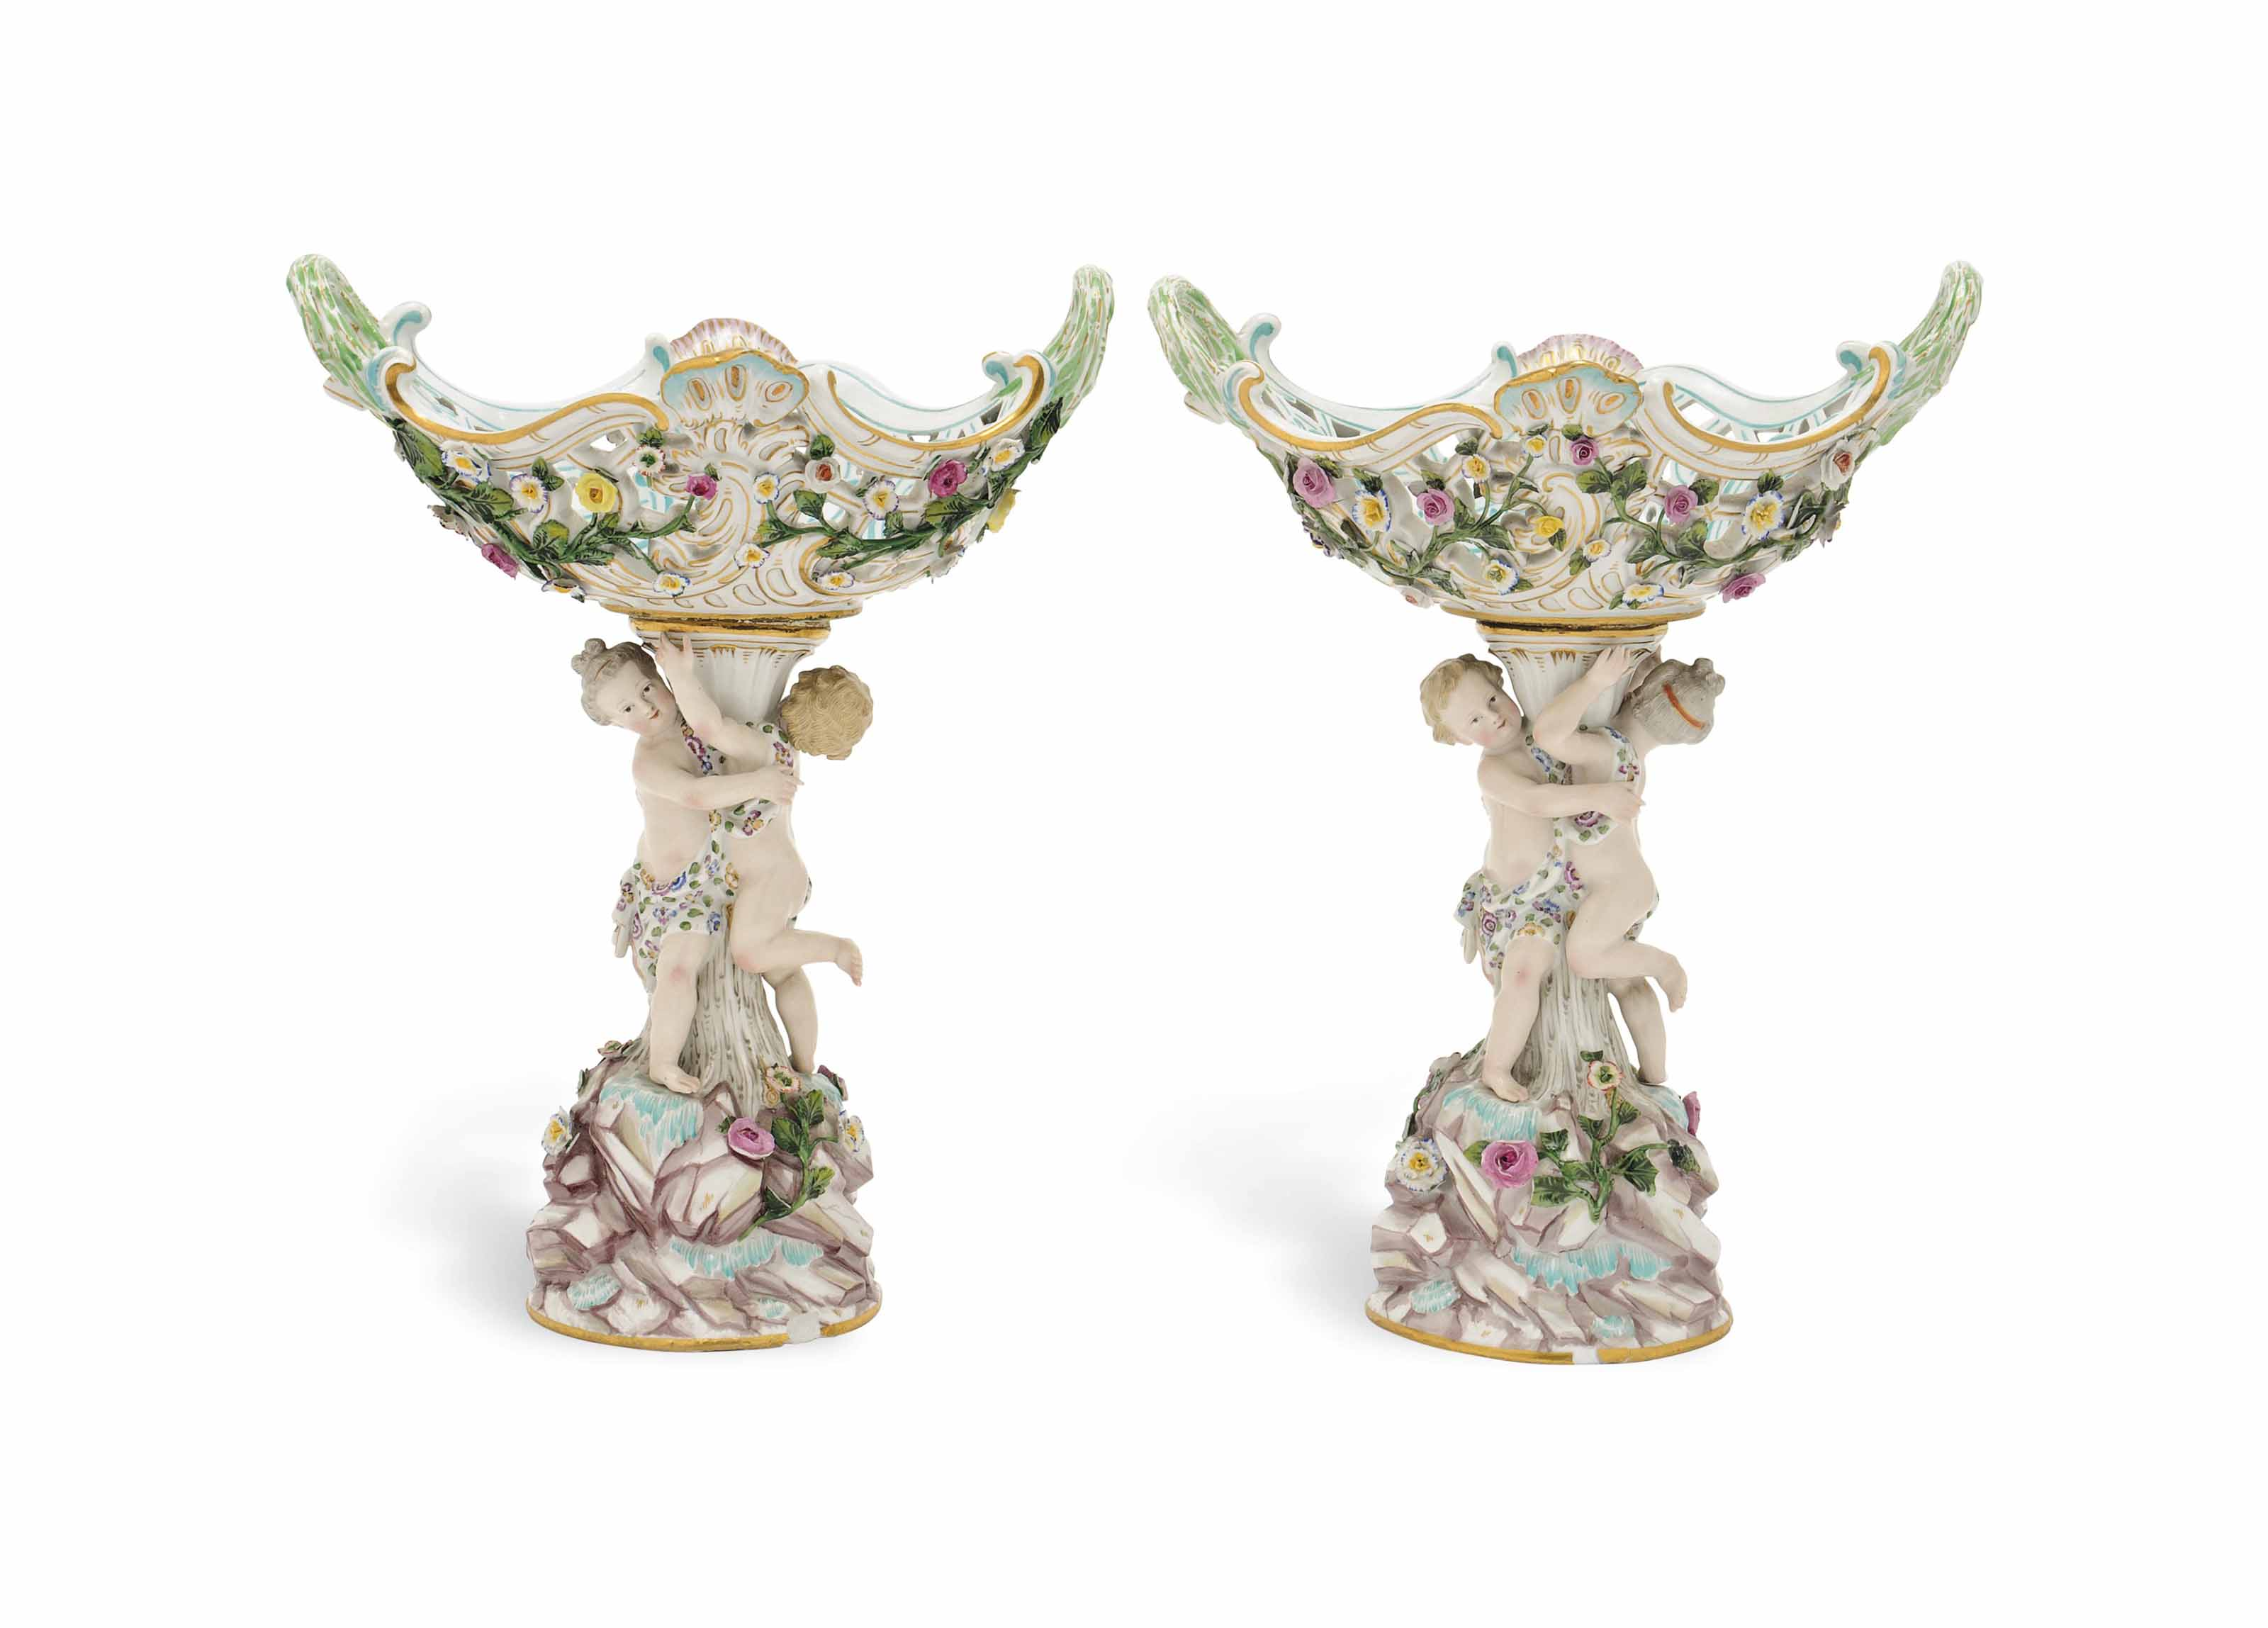 A PAIR OF MEISSEN FIGURAL CENT